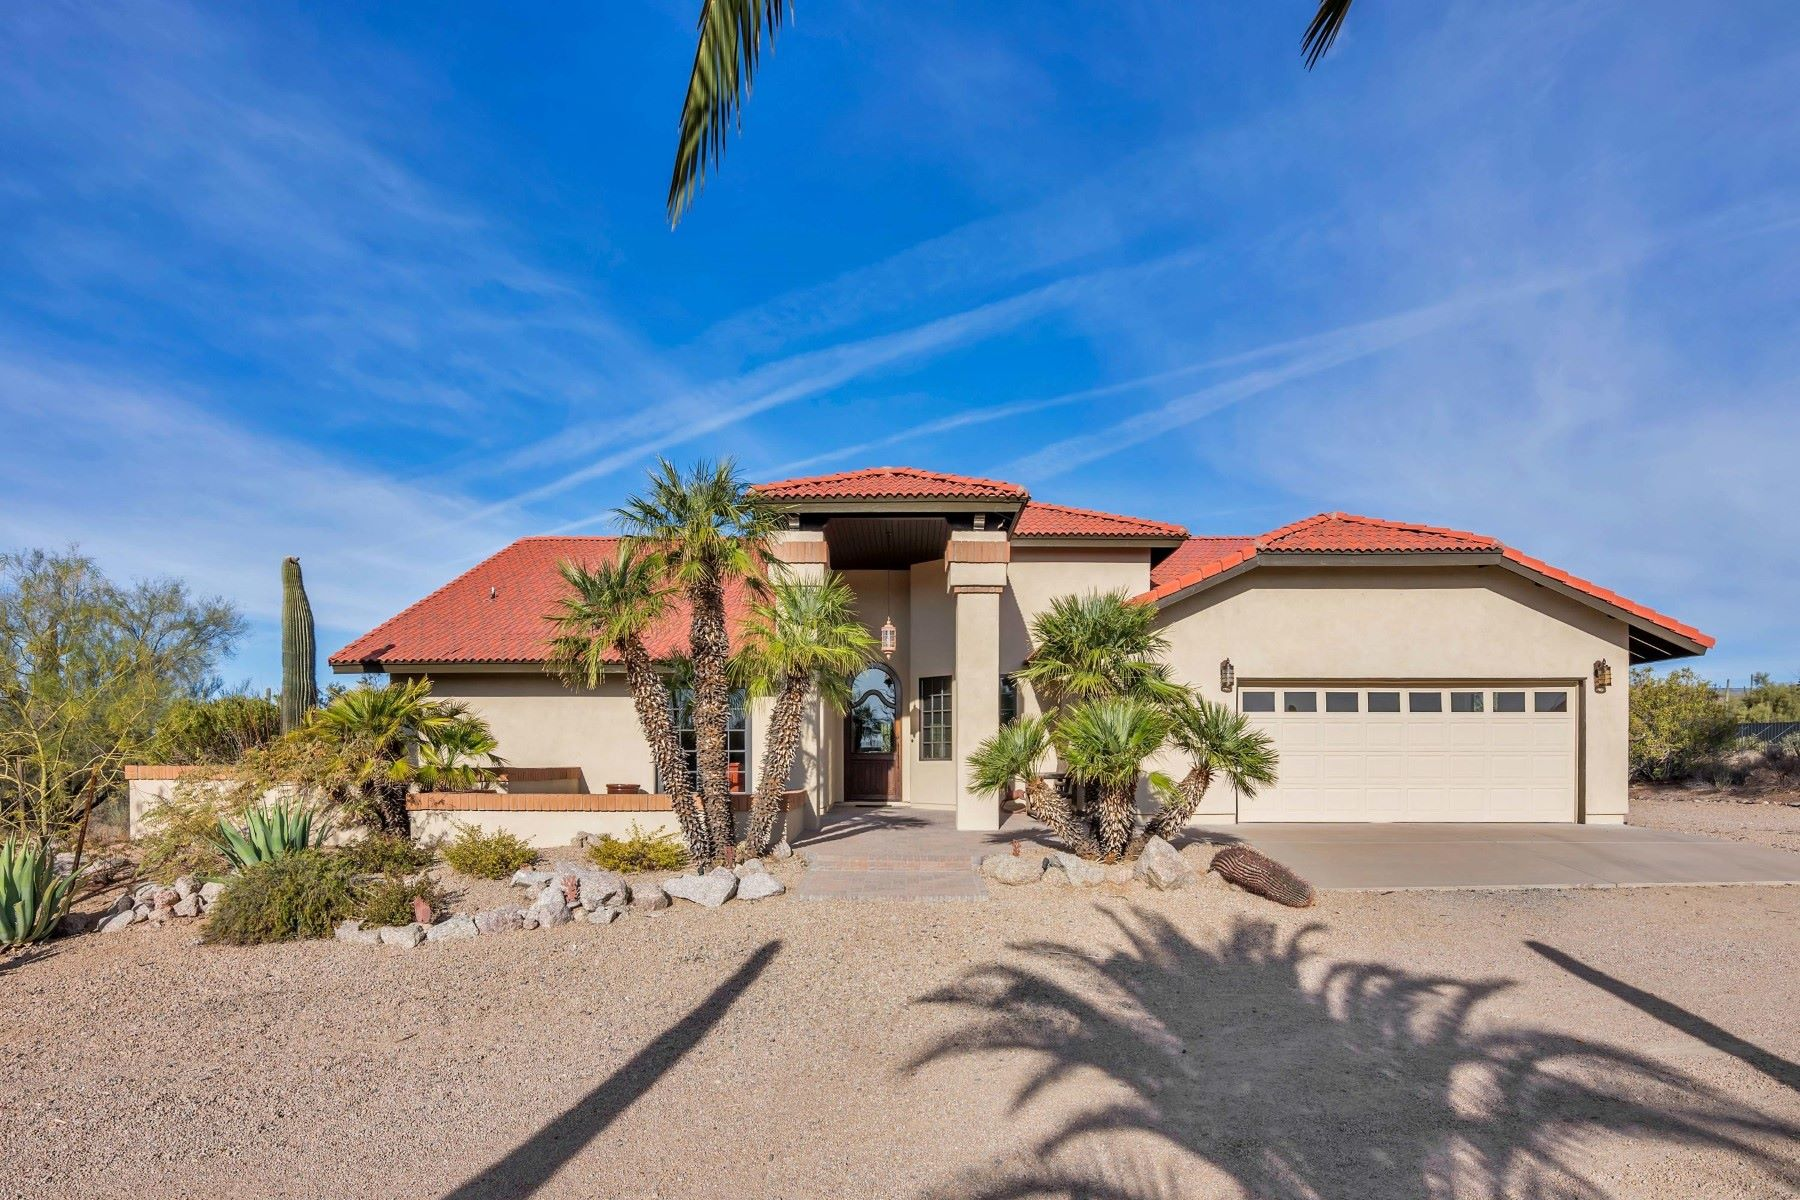 獨棟家庭住宅 為 出售 在 Beautiful home in the Mountain Foothills 40816 N Fleming Springs RD, Cave Creek, 亞利桑那州, 85331 美國